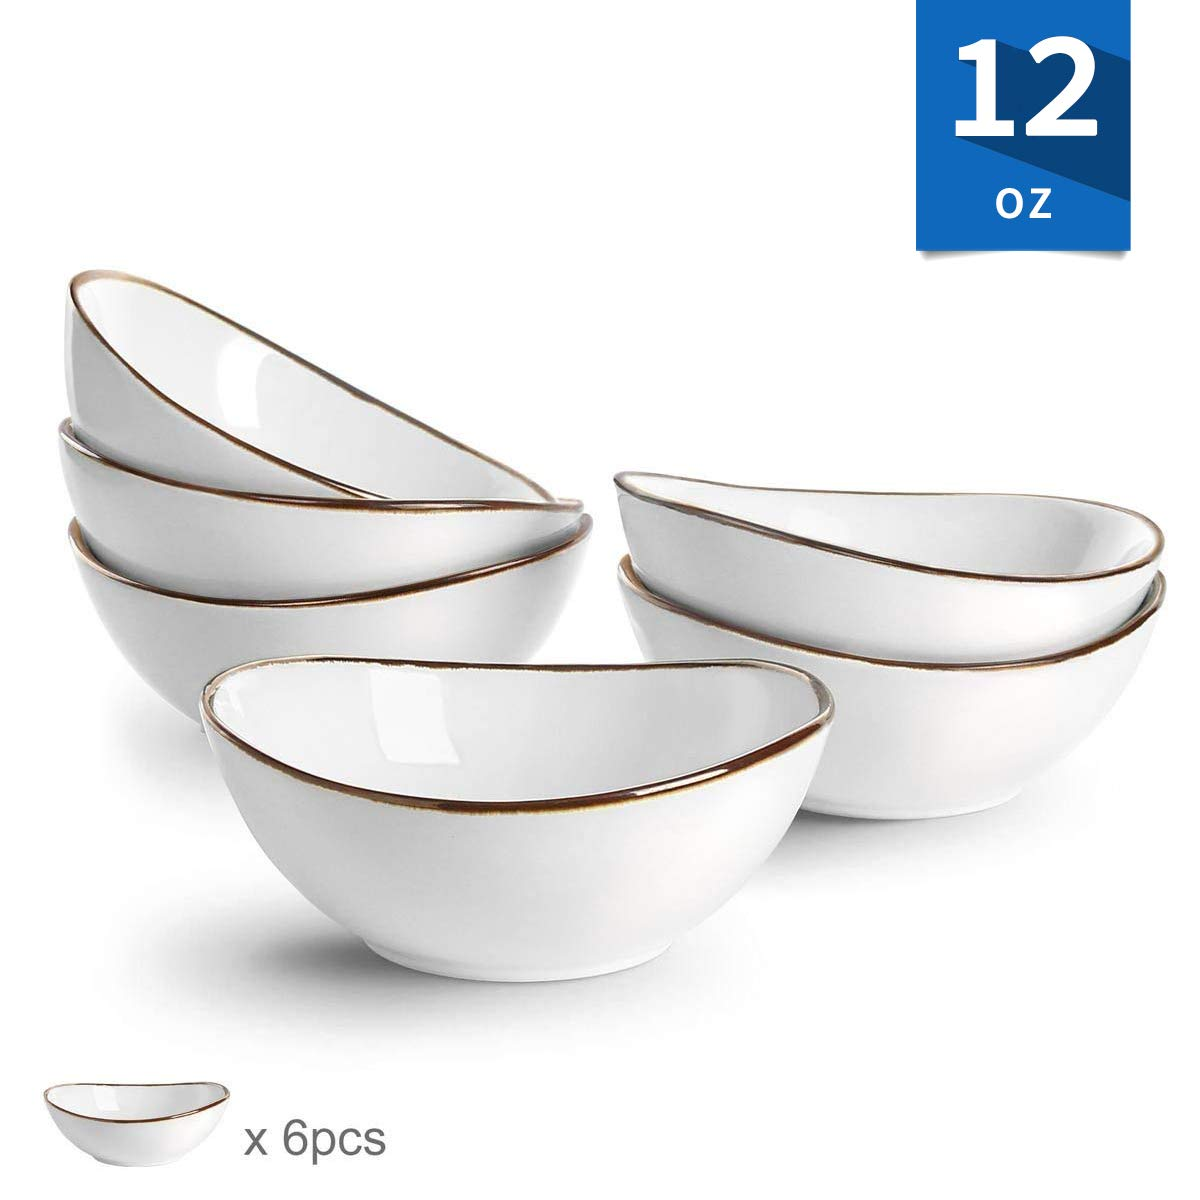 Porcelain Bowls Dessert Cereal Salad Bowl Set Microwave Safe, 6-inch/12 oz Set of 6,White GO KITCHEN